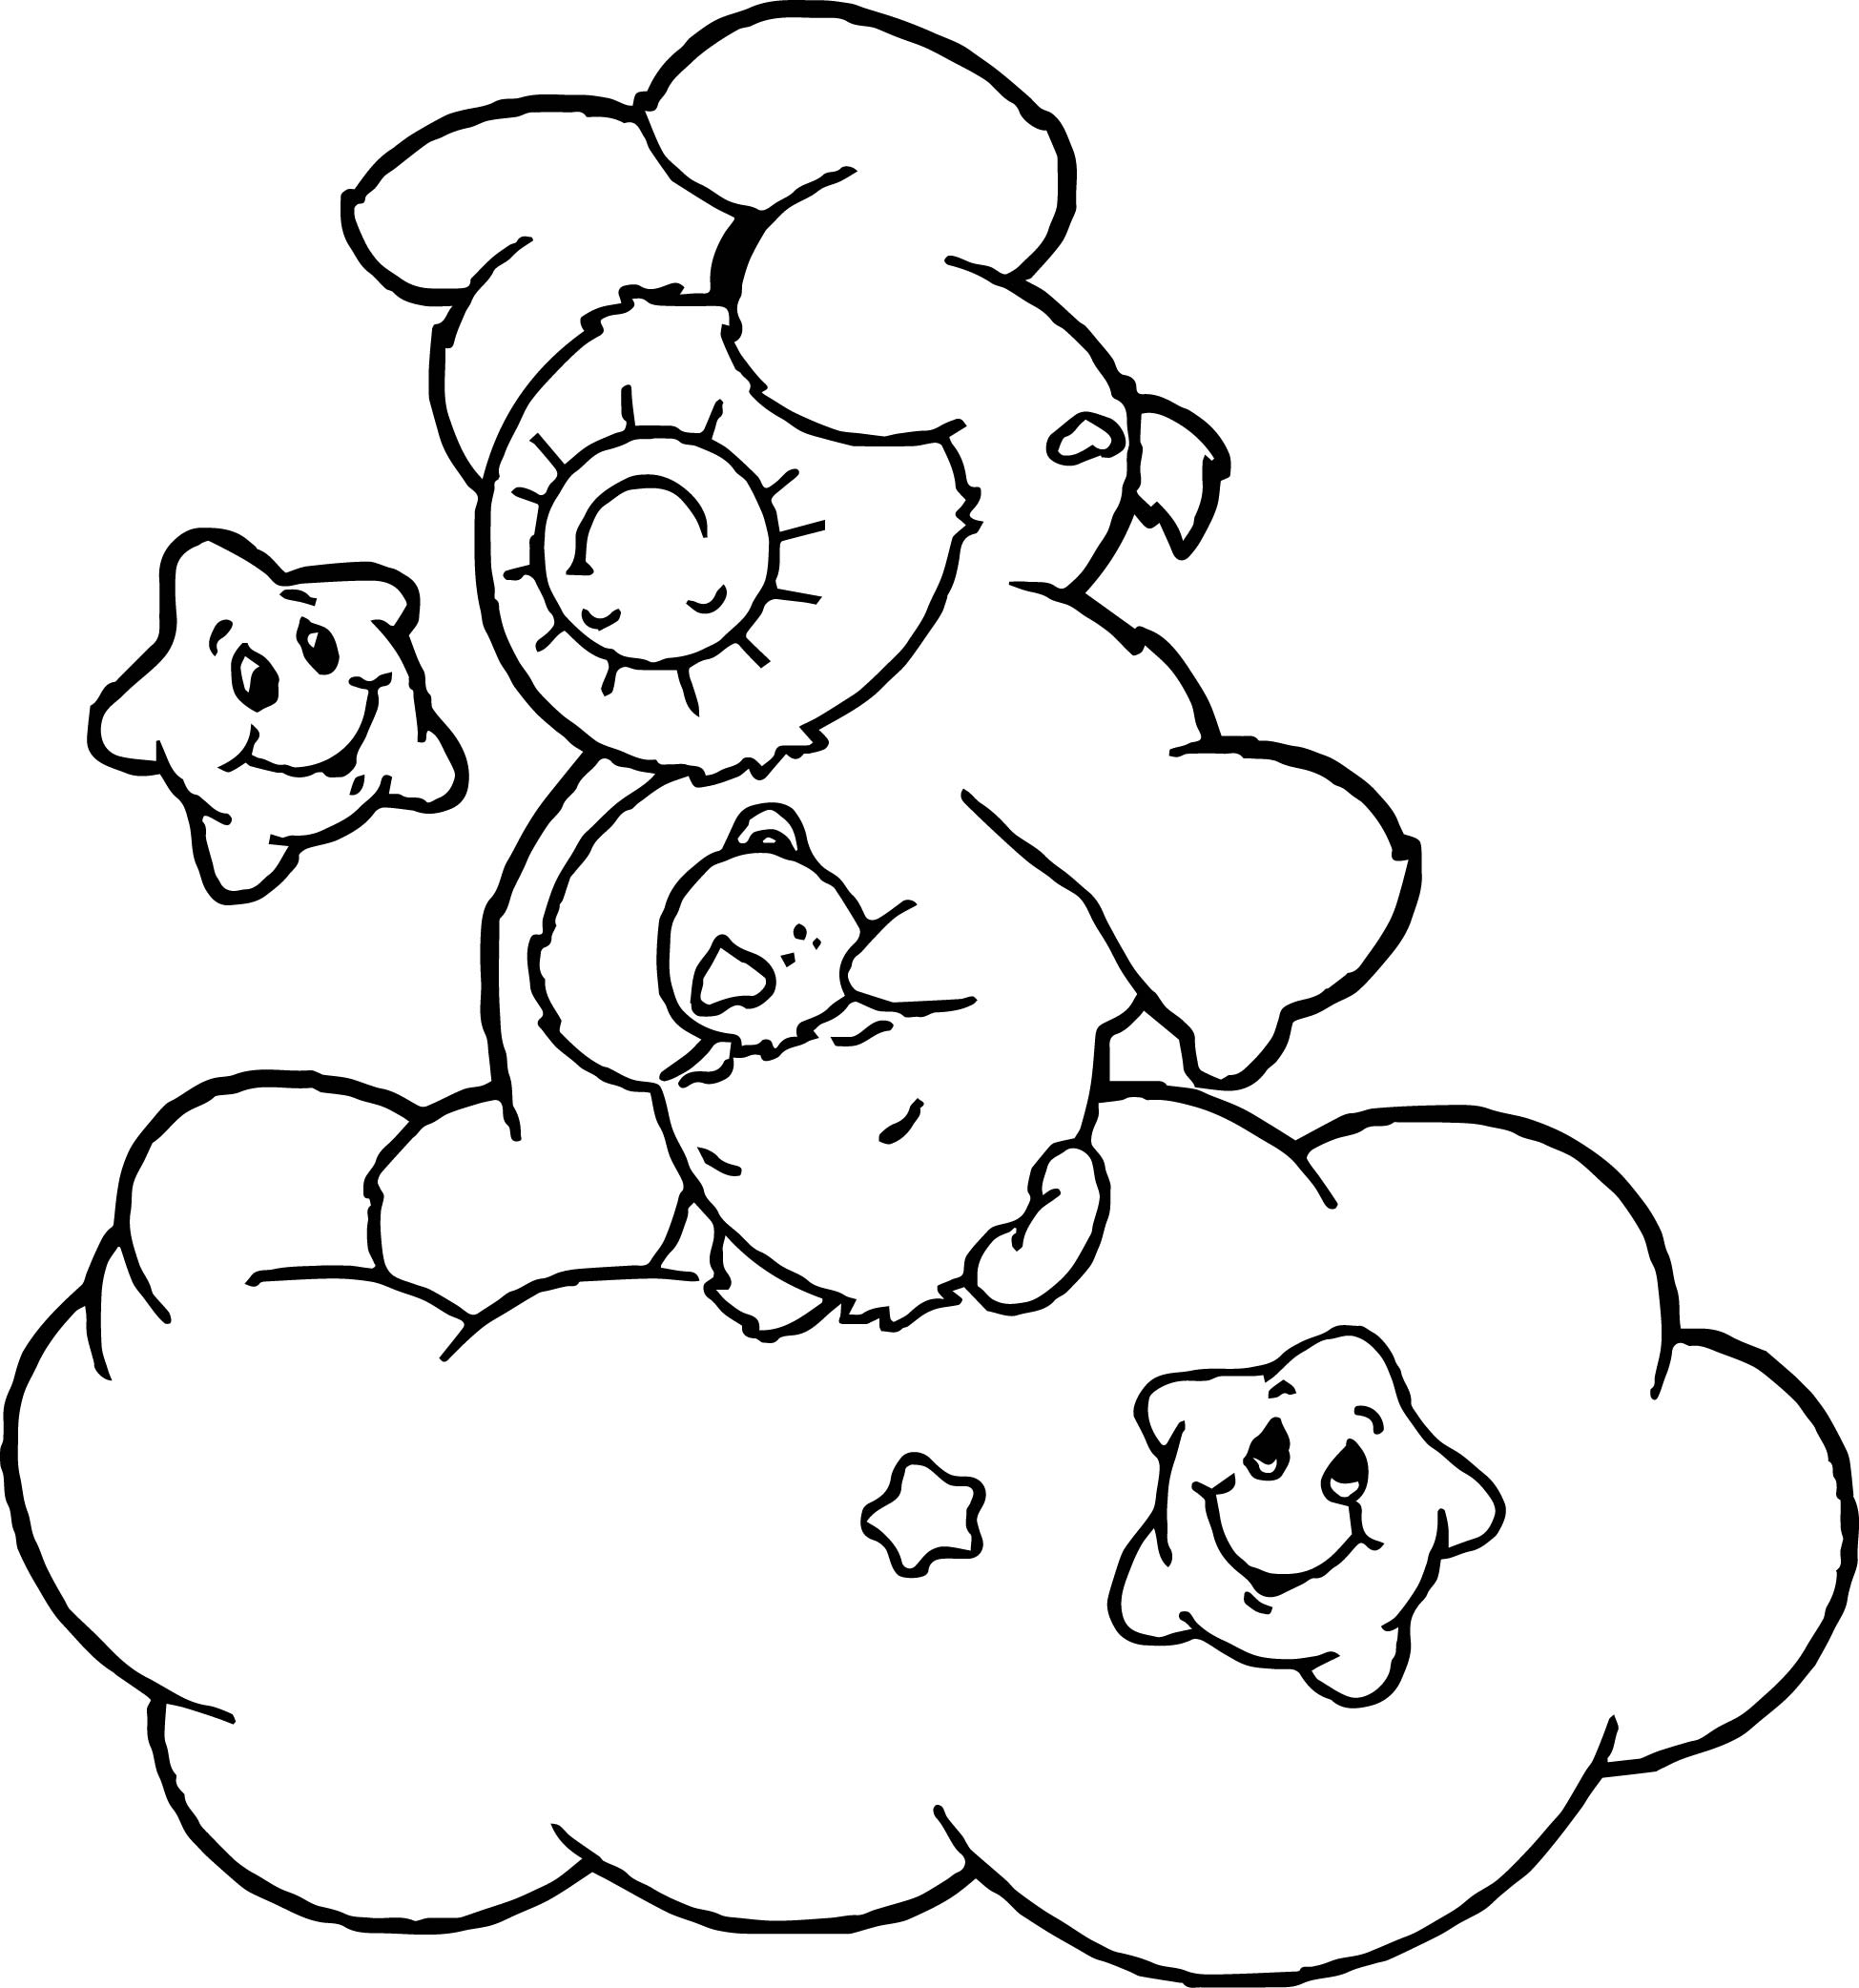 Care Bears Turn Coloring Page